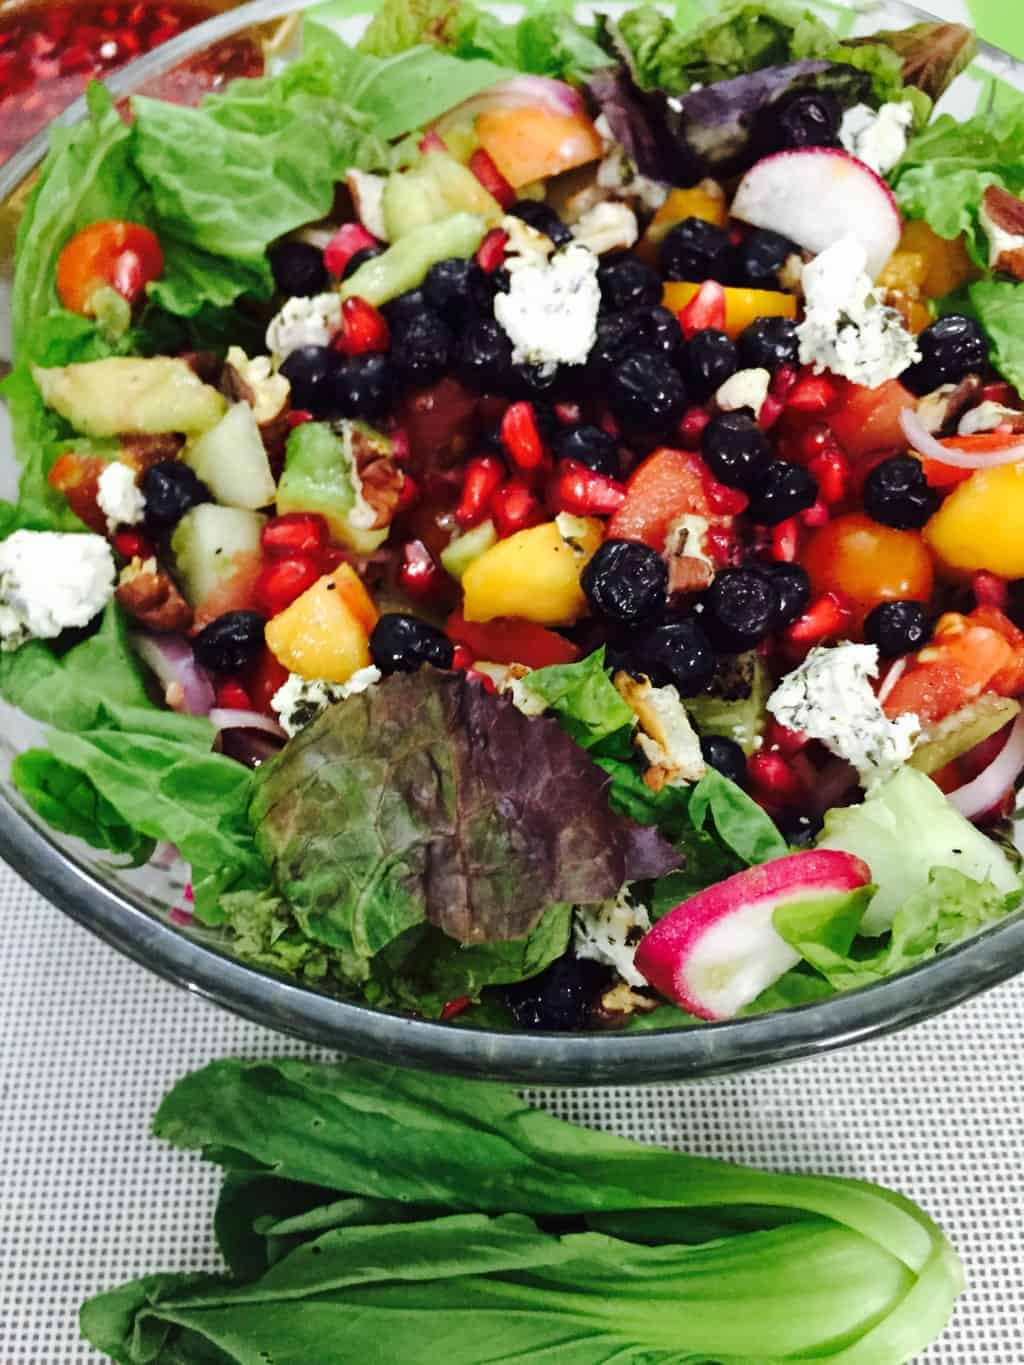 Avocado Berries Salad with Goats Cheese and Lemon Blueberry Dressing